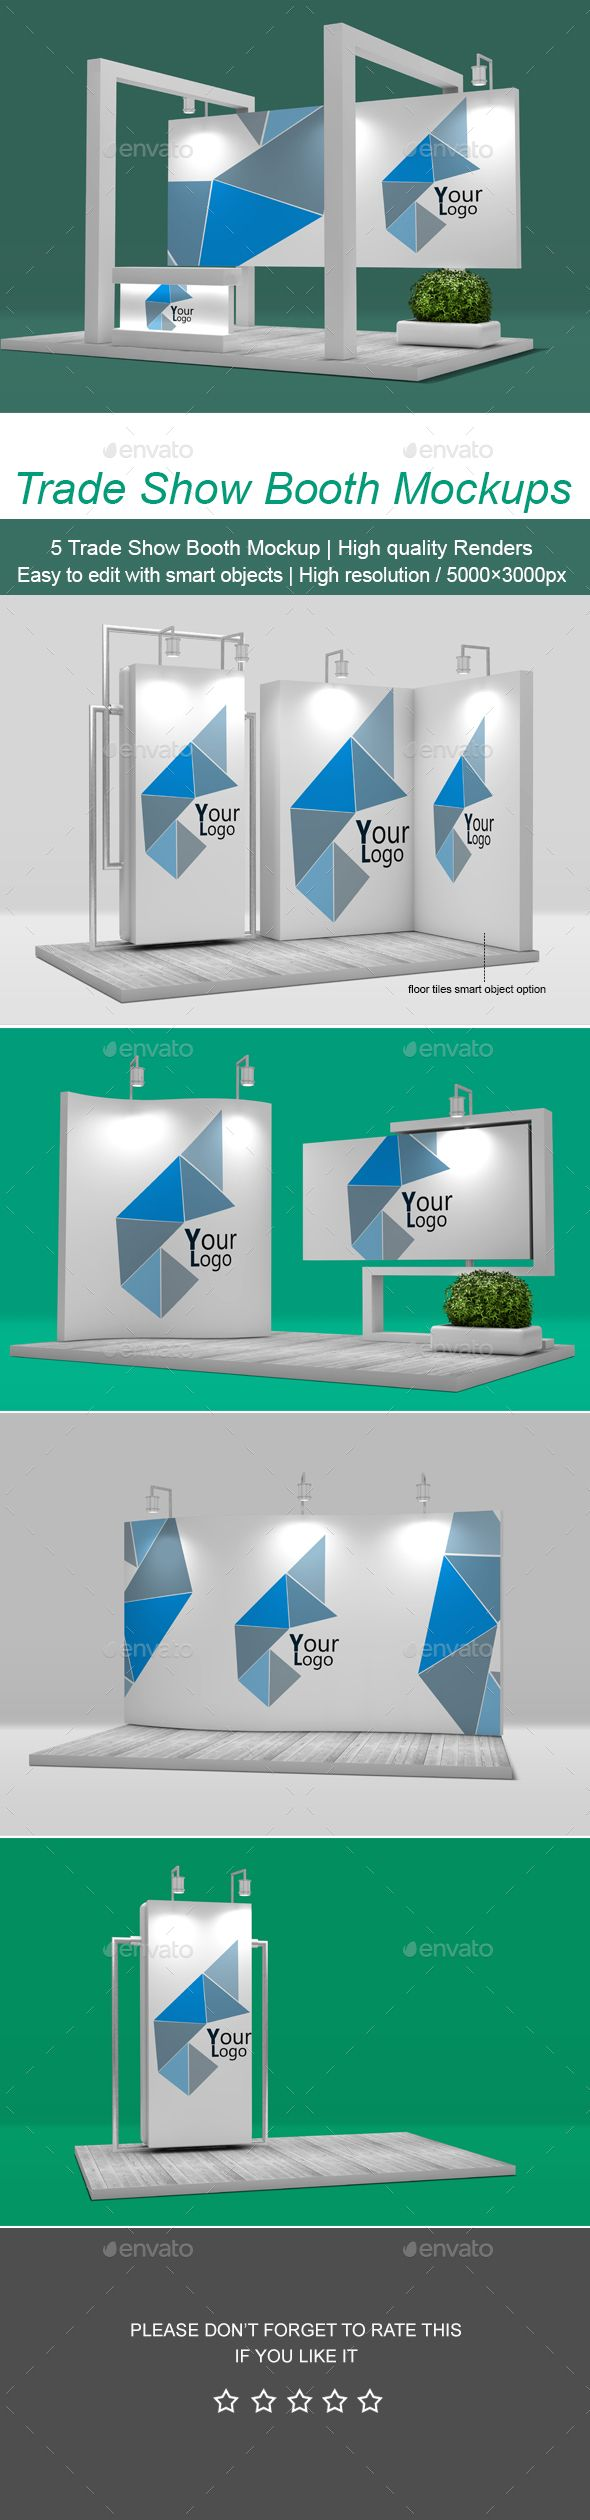 Trade Show #Booth #Mockup pinned by @digitalphaser